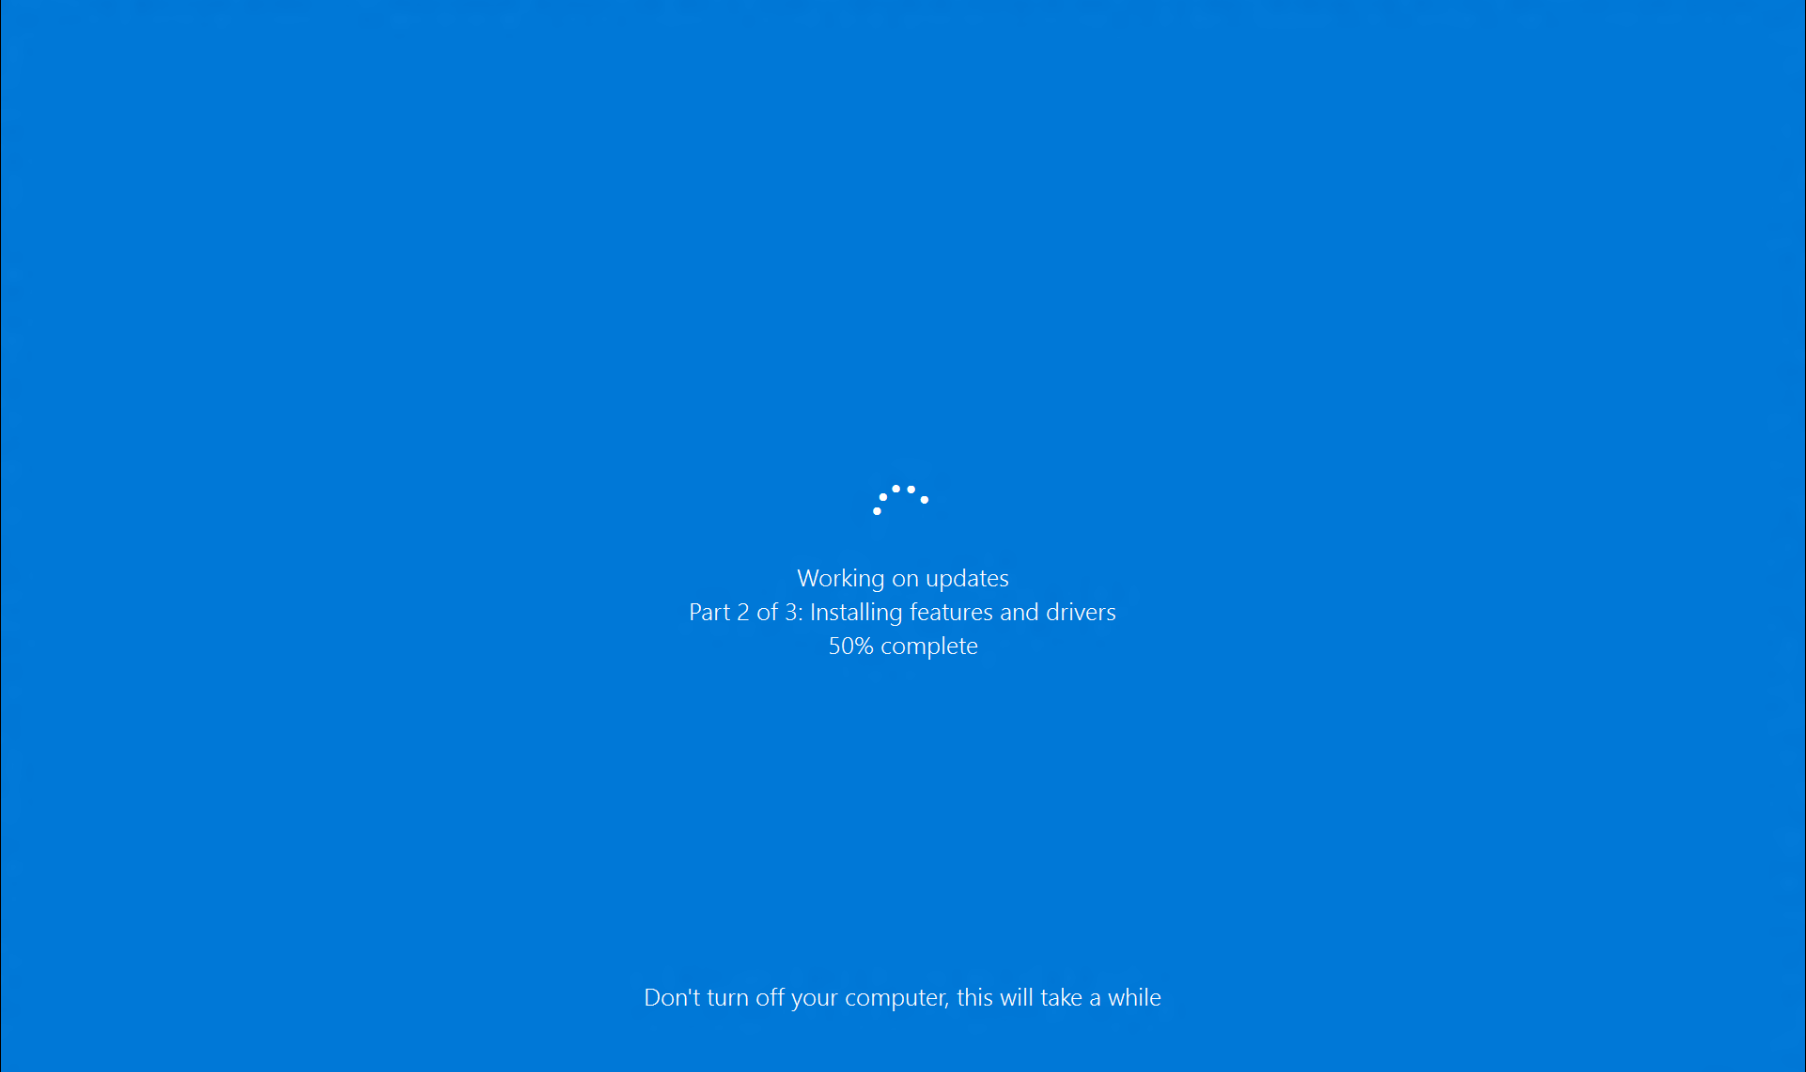 Windows 10 stuck in safe mode for Windows 10 update